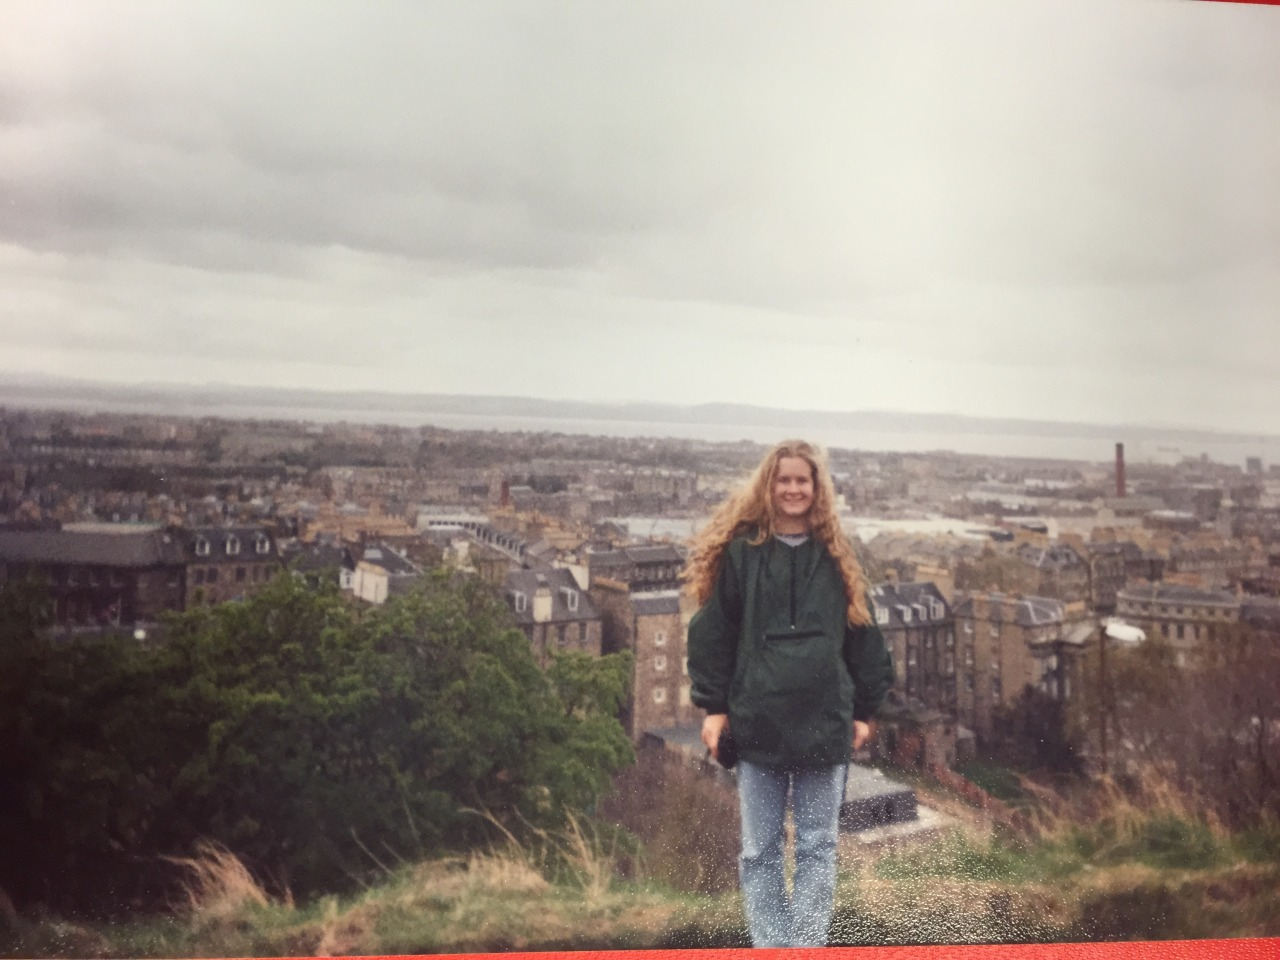 """The Next Great Adventure  My first trip abroad in 1997, pictured above, began with a stop in Edinburgh, Scotland. I was 16 in that photo. On that trip, I also visited London and Paris. All connections in Europe were made via train and it was a trip I will never forget because I was so young and fresh and had been dreaming about traveling internationally for years.  Fast forward to 2015 and I've planned and purchased all of the essential elements for my trip in May. The focus of this trip is Latvia and Lithuania. I depart the United States on May 11, in the evening, and return in the evening on May 22. It will be the longest trip I've been on since my self-funded, graduation trip to Europe in 2003. It will also be the second solo international trip I've ever taken.  My first city is Warsaw, Poland. I fly from Chicago to London Heathrow and then on to Warsaw. When I began planning this trip, I originally was planning to fly into Stockholm, Helsinki, or Copenhagen. Then I started reading The Girl from Krakow and Poland interested me. So I will spend two days in Warsaw before departing for Riga on an early morning. It is a very brief stay, but I am considering this a taste of Poland that will make me want to return. Highlights that I plan on seeing in Warsaw are the  Poster Museum ,the  Chopin Museum , and the  Warsaw Uprising Museum.   Once in Riga, I am there for 3.5 days. I am running the Riga marathon and that will be my main """"sightseeing"""" of the city. I am planning to visit Jurmala, a resort town on the coast of the Baltic Sea that is a short train ride from Riga. To me, going to Jurmala and visiting one of their spas sounds like a great thing to do right after the marathon. I also am looking into a day trip to the Hill of Crosses in Lithuania from Riga but I might just enjoy my time in Riga and Jurmala so that I can really get to know the city. I depart Riga for Vilnius on a Tuesday.  Once in Vilnius, I am there for 3.5 days that I fully intend to pack with sights"""